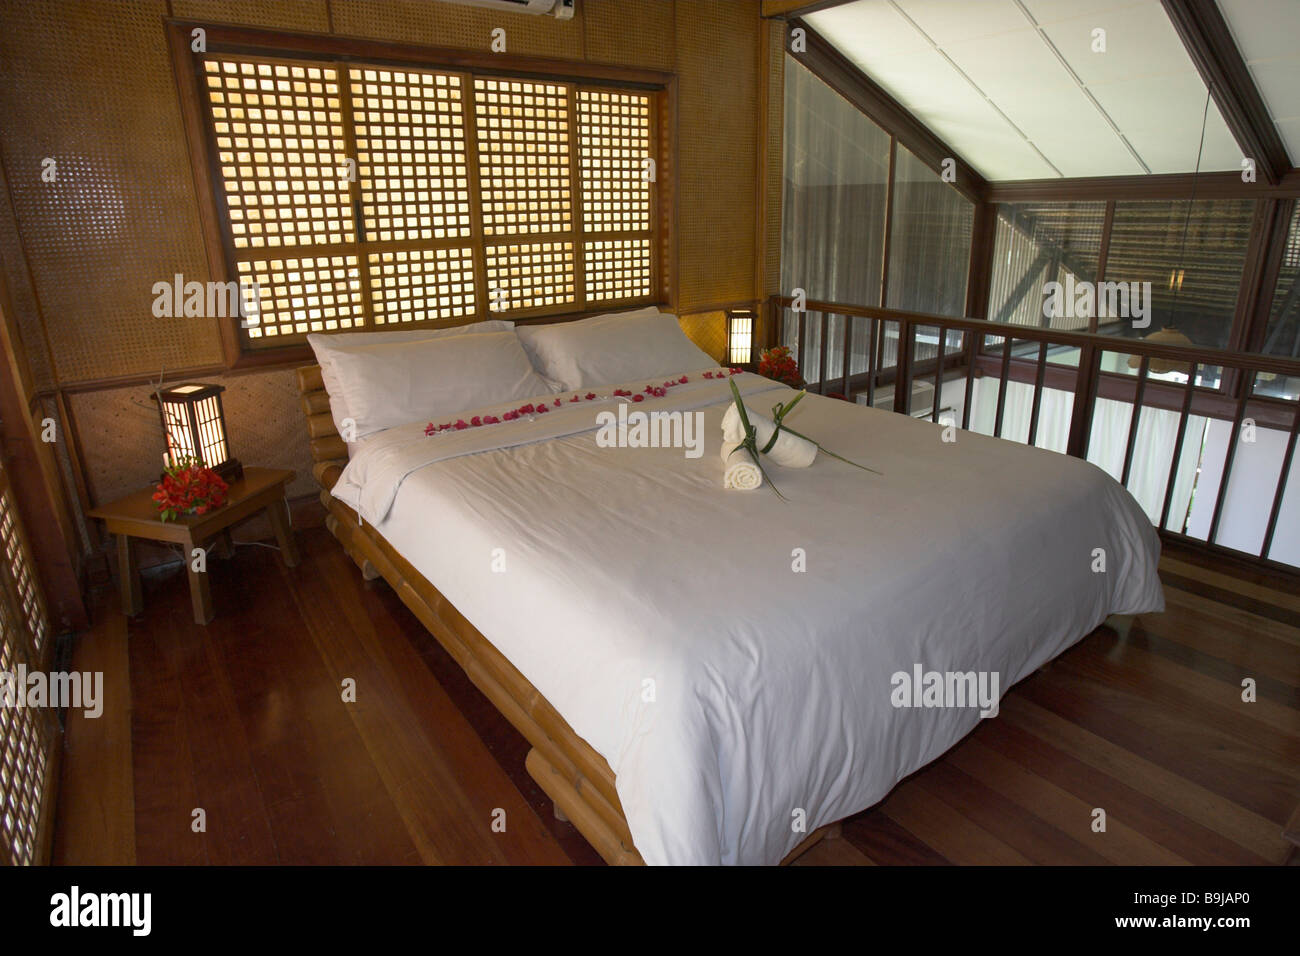 Family suite of the Ananyna Resort, Asia, Philippines, Southeast Asia Stock Photo